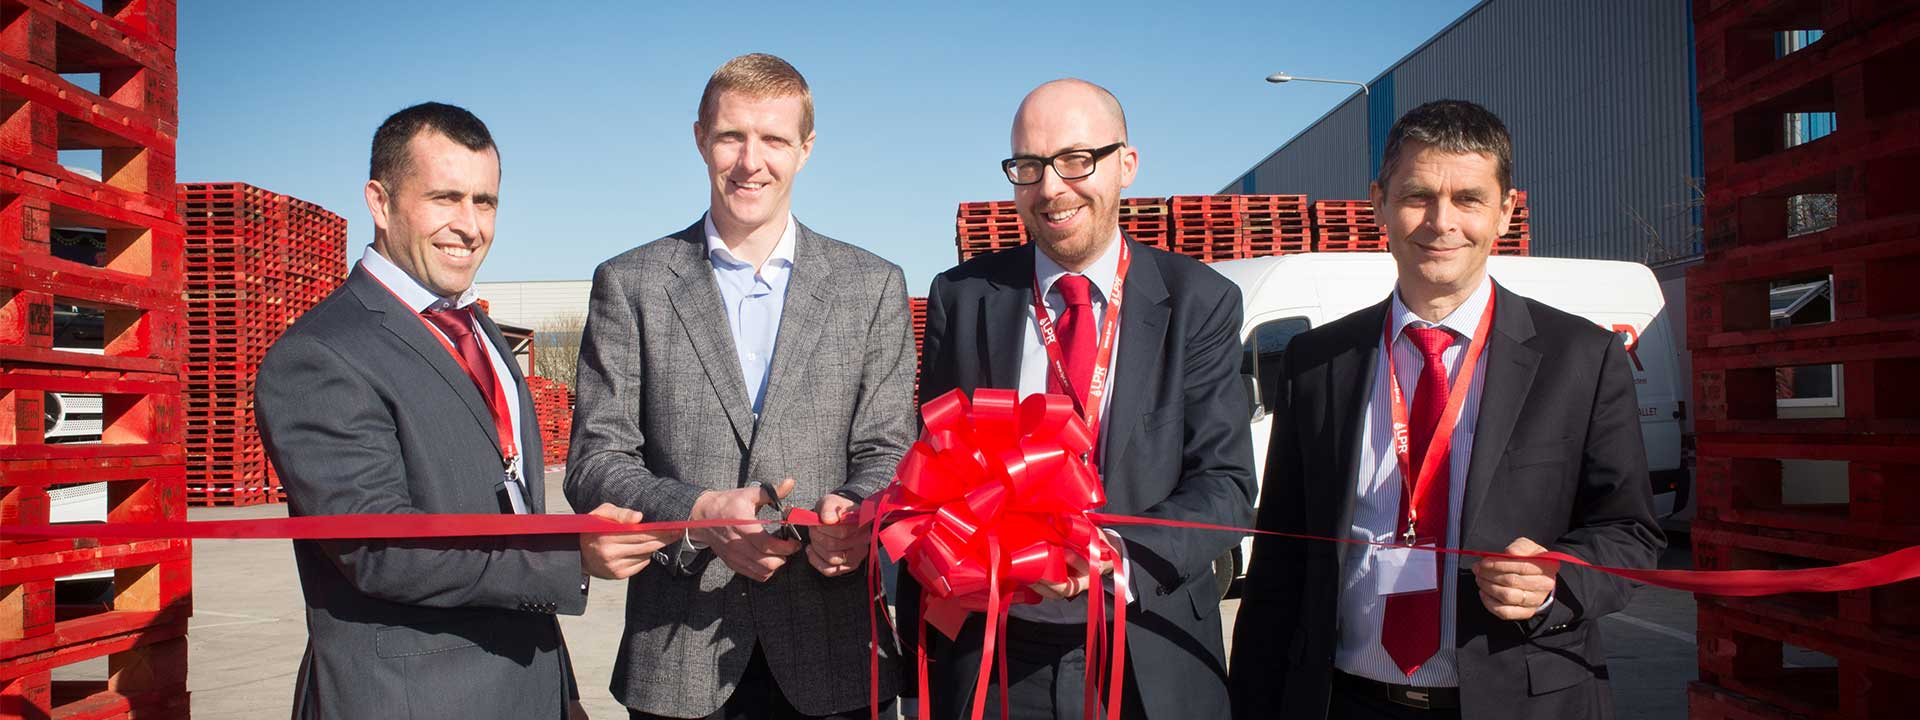 LPR Opens New Depots in Partnership with Goggins